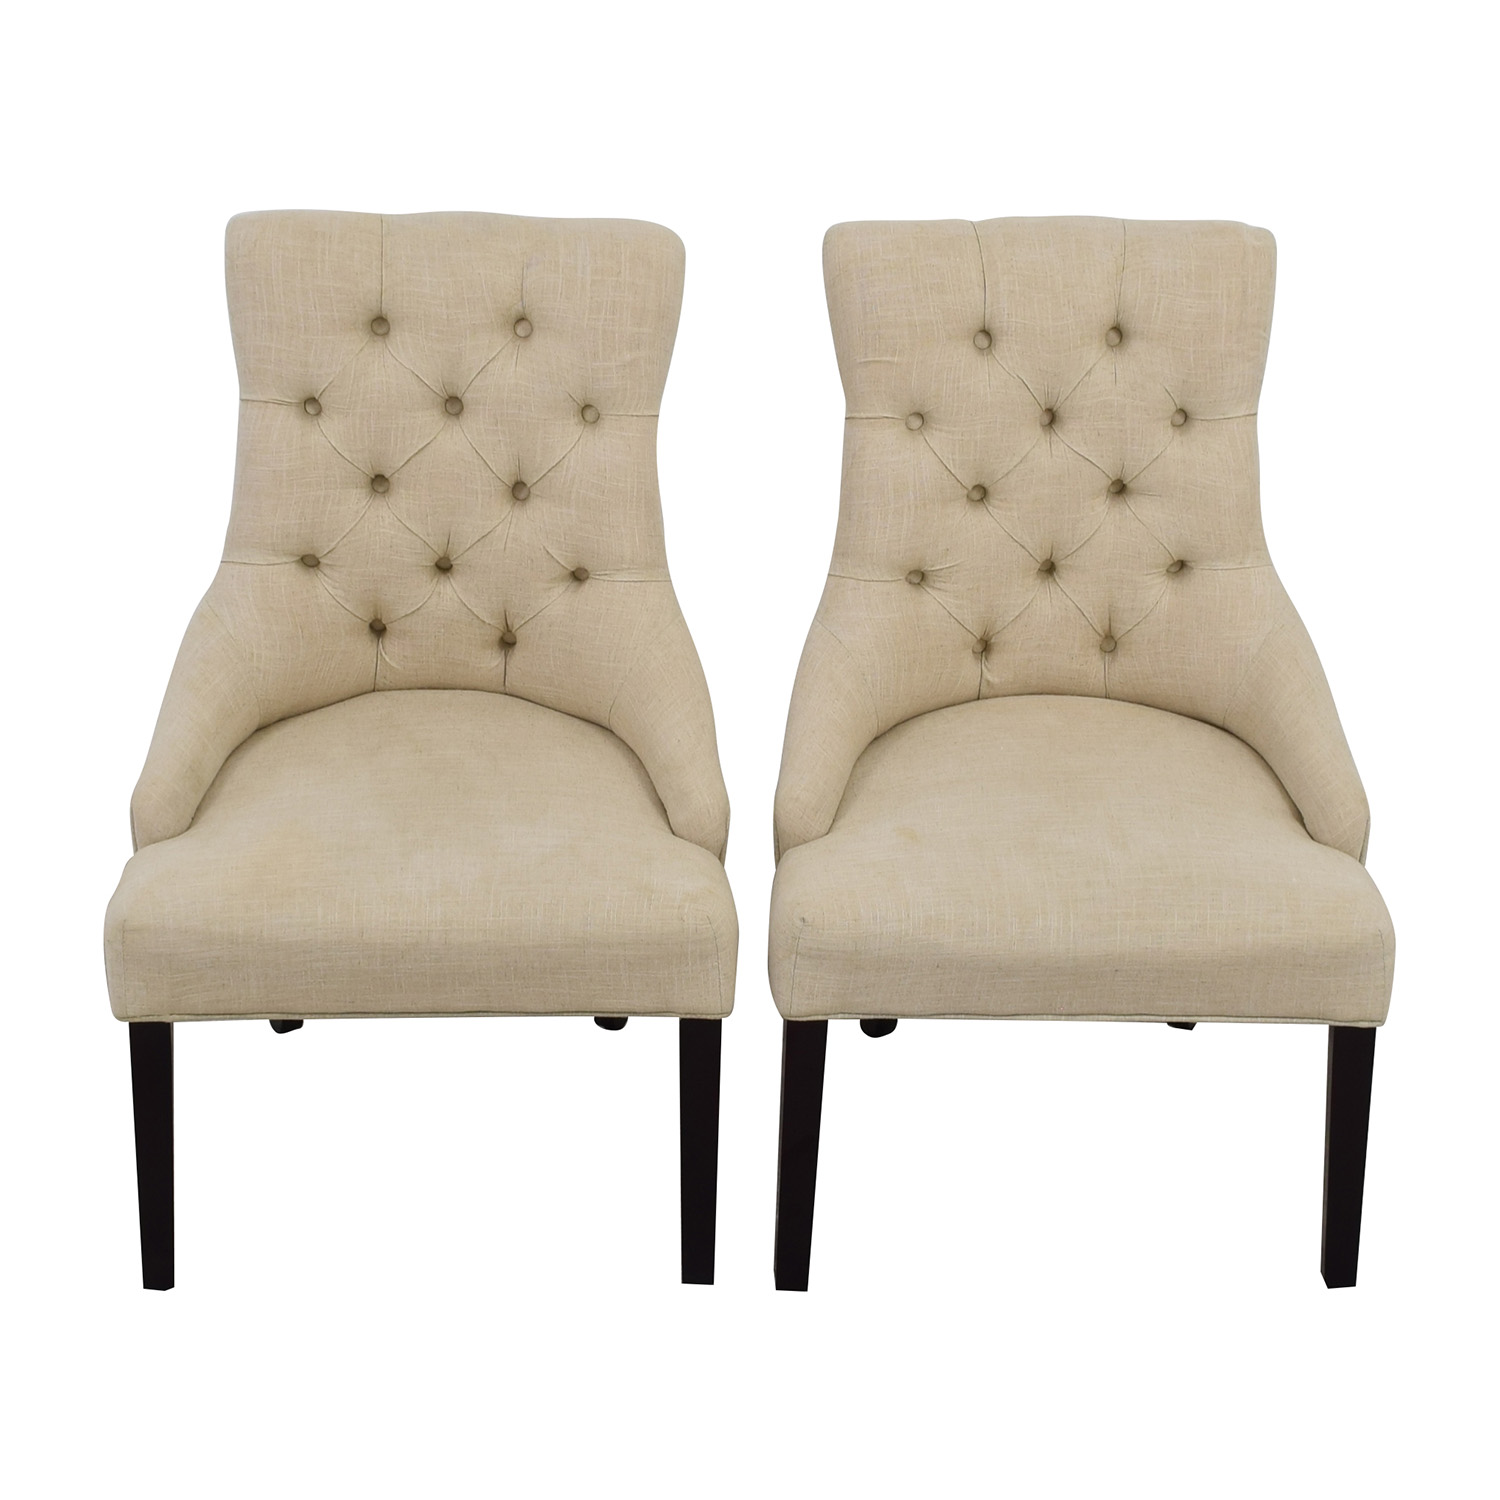 white tufted chair dwr salt review 50 off raymour and flanigan